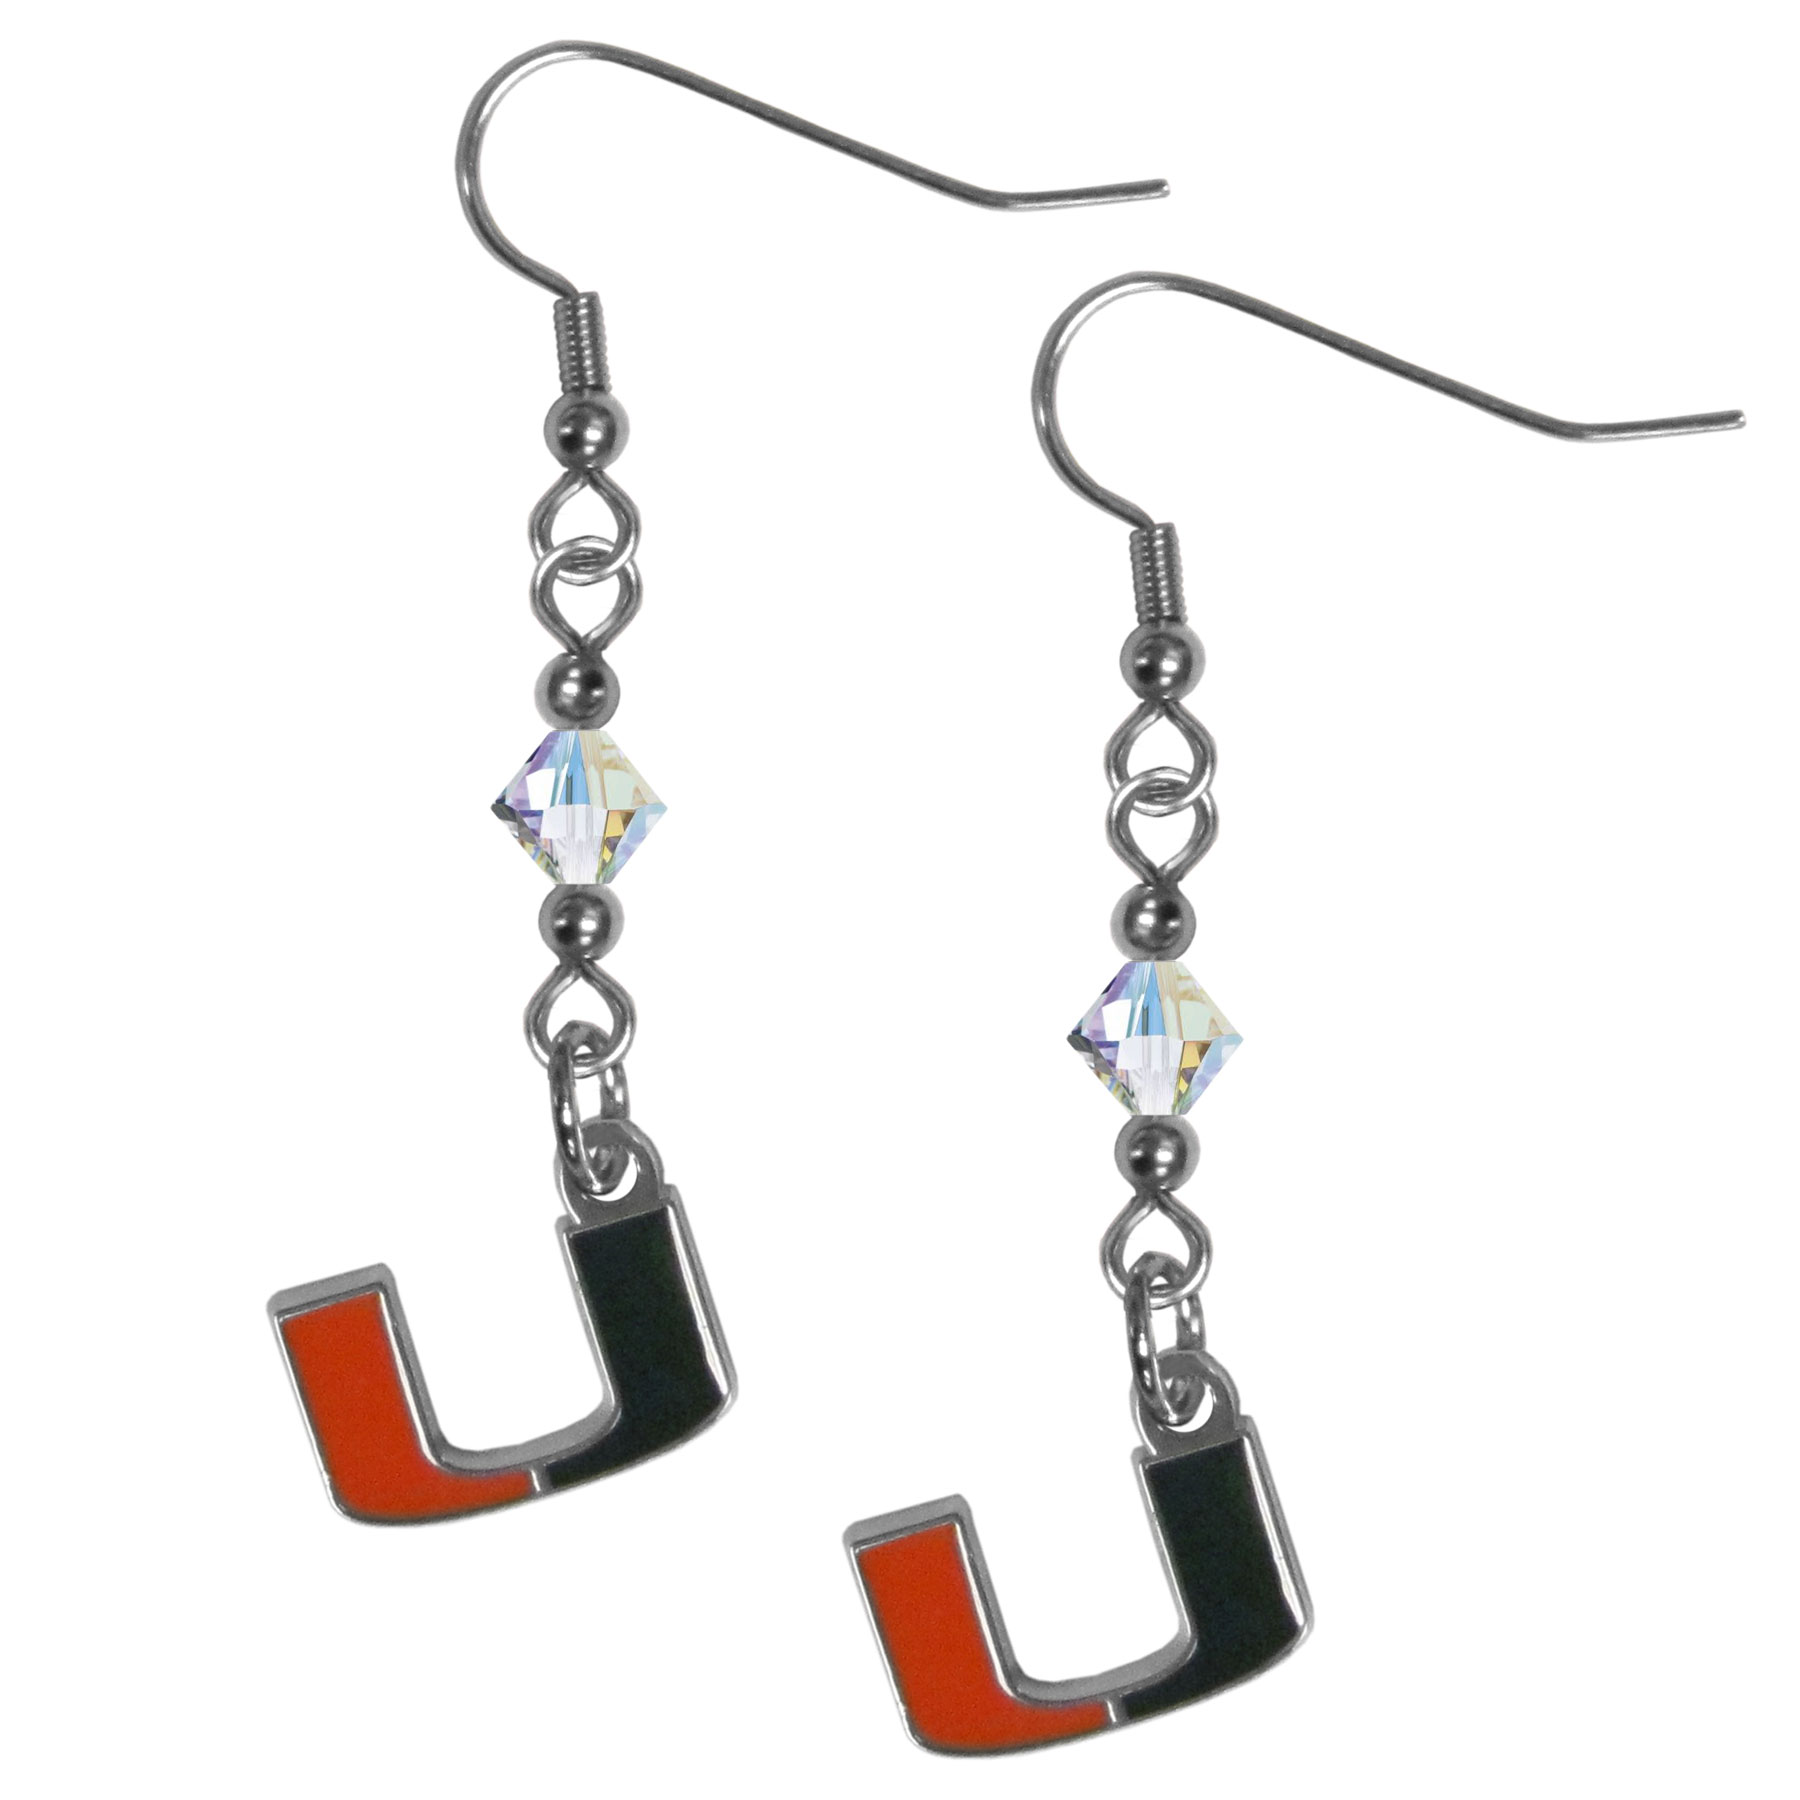 Miami Hurricanes Crystal Dangle Earrings - Our crystal dangle earrings are the perfect accessory for your game day outfit! The earrings are approximately 1.5 inches long and feature an iridescent crystal bead and nickel free chrome Miami Hurricanes charm on nickel free, hypoallergenic fishhook posts.